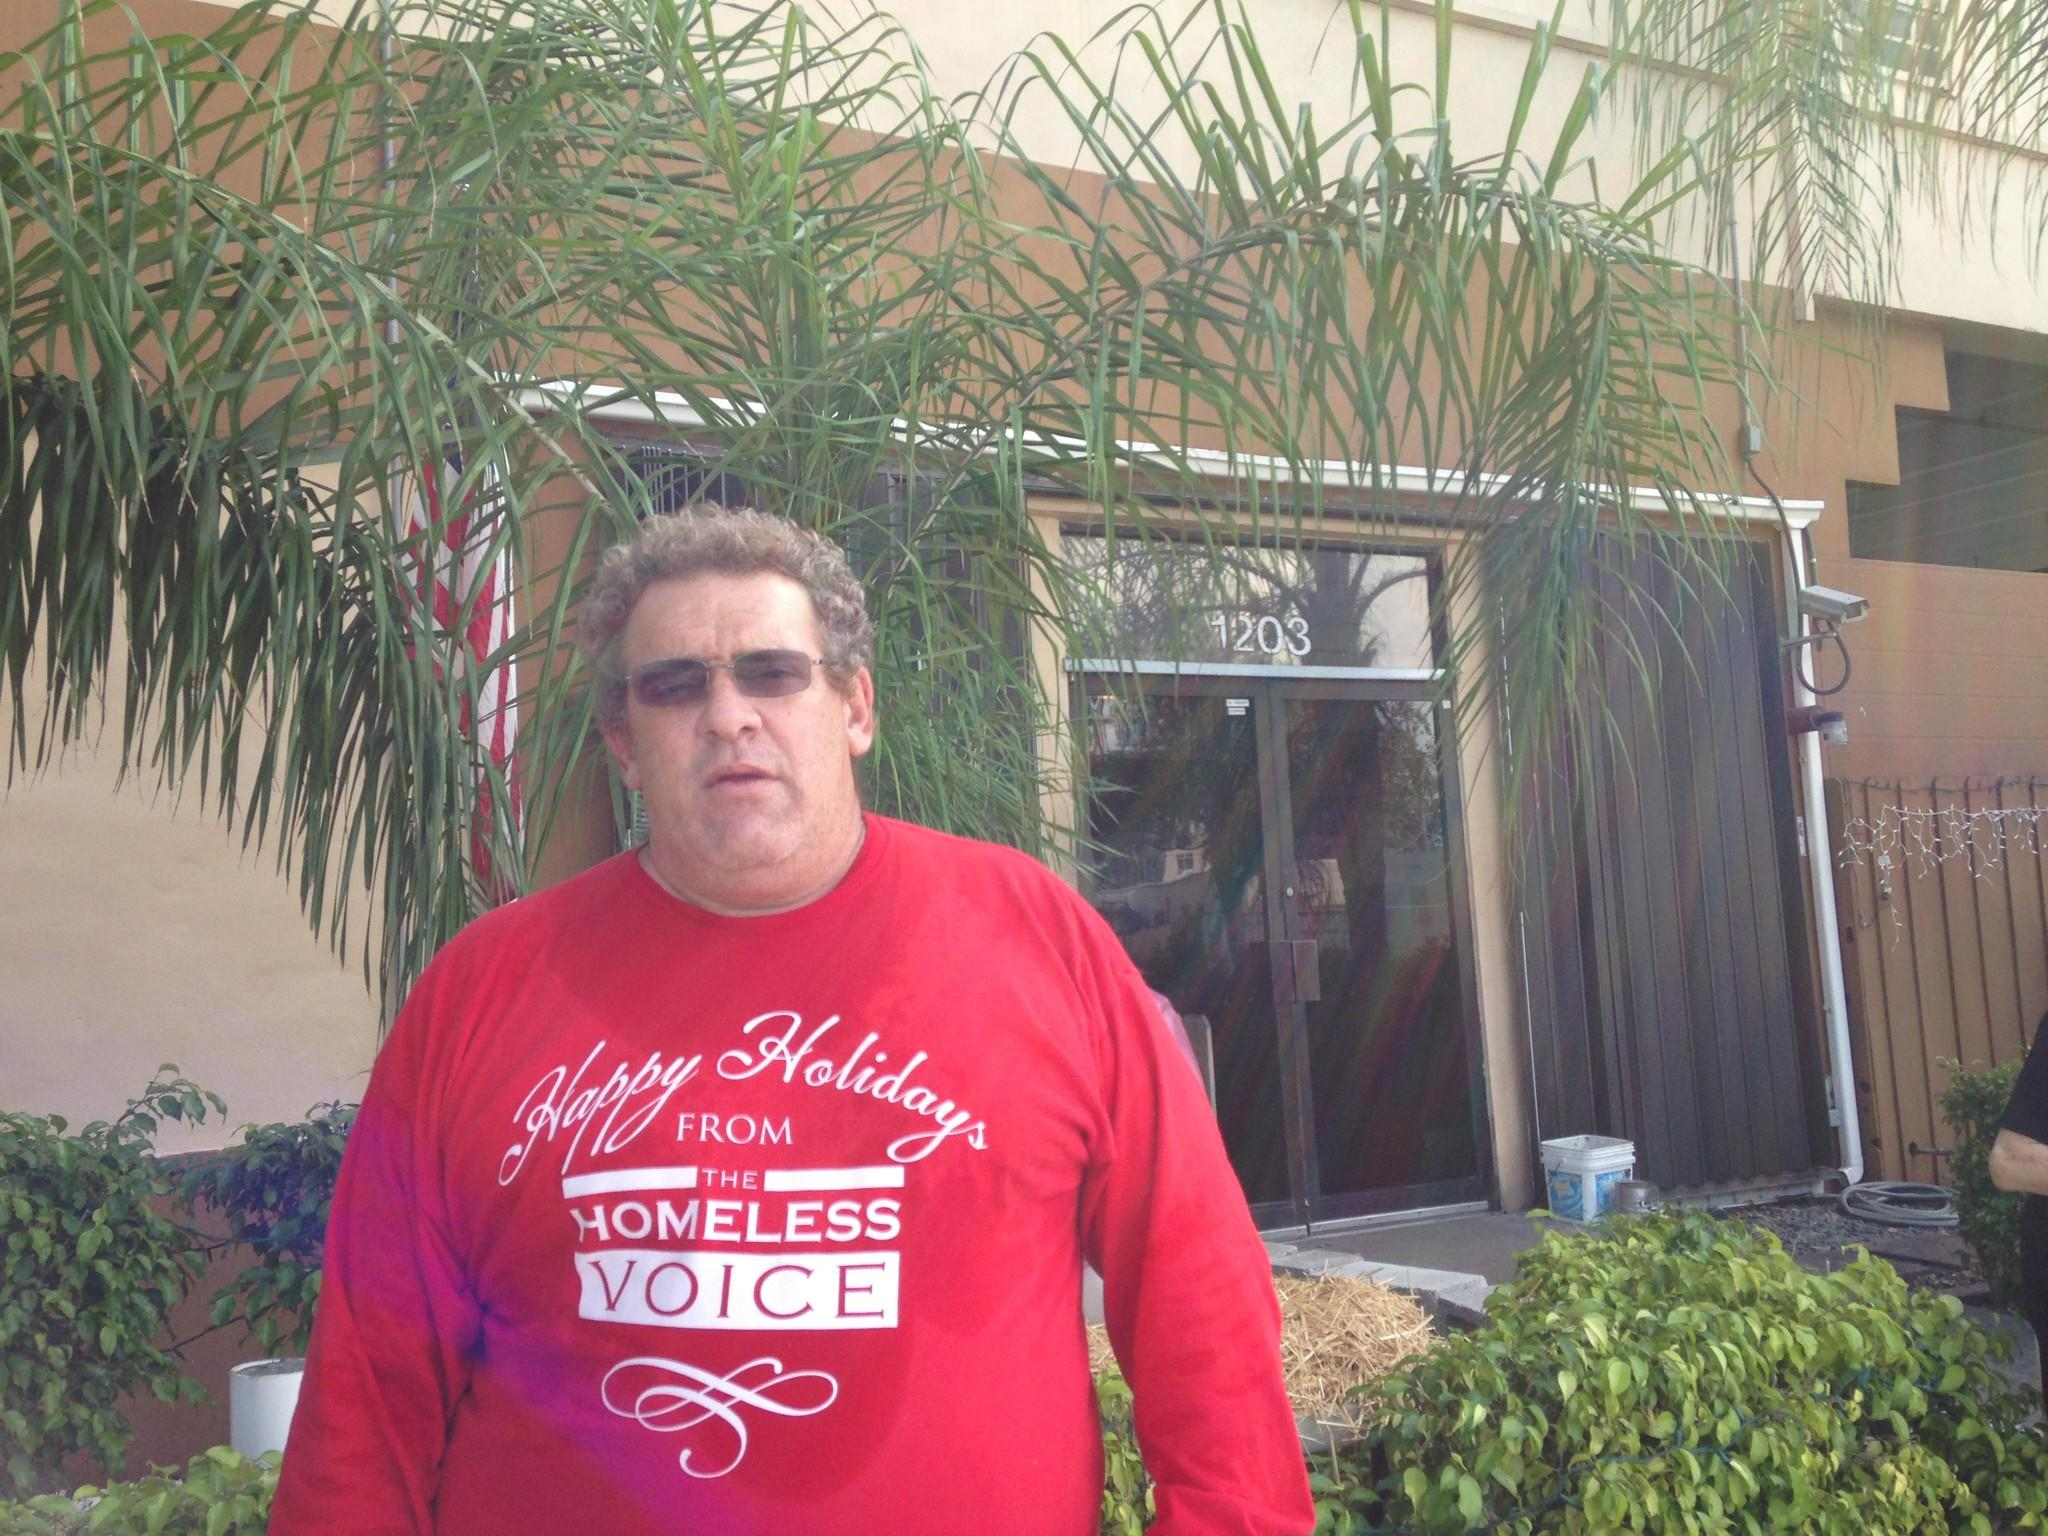 Sean Cononie, founder/director of The Homeless Voice shelters, outside the Hollywood headquarters on Tuesday.